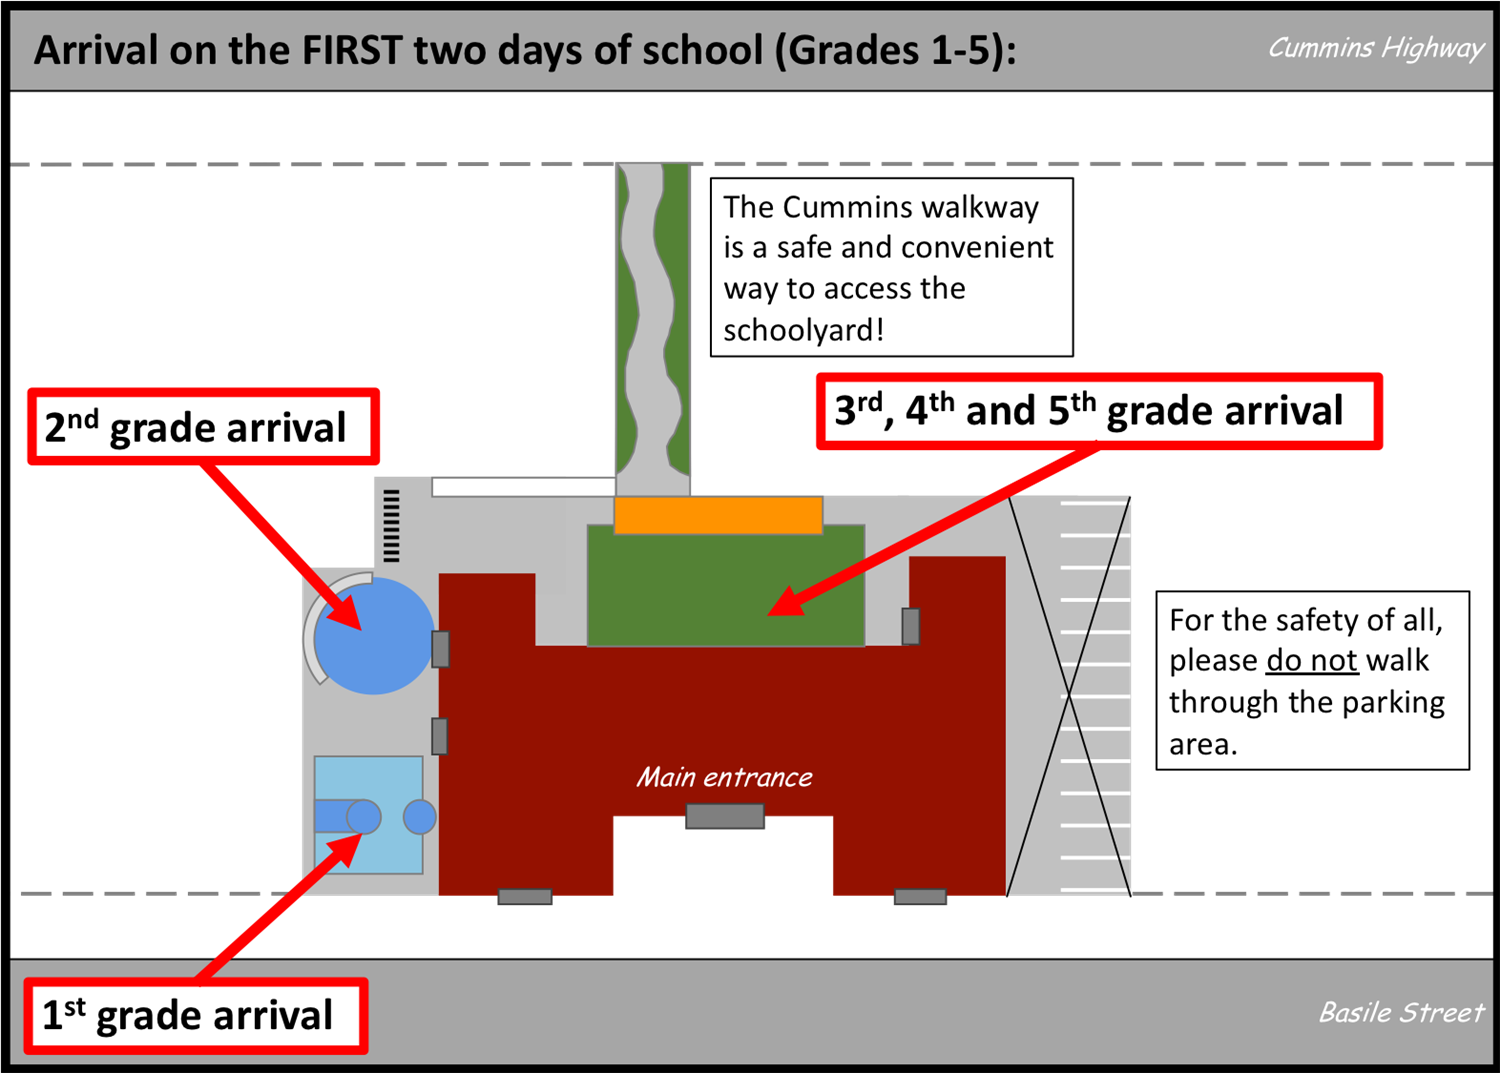 arrival diagram grades 1-5, first days of school